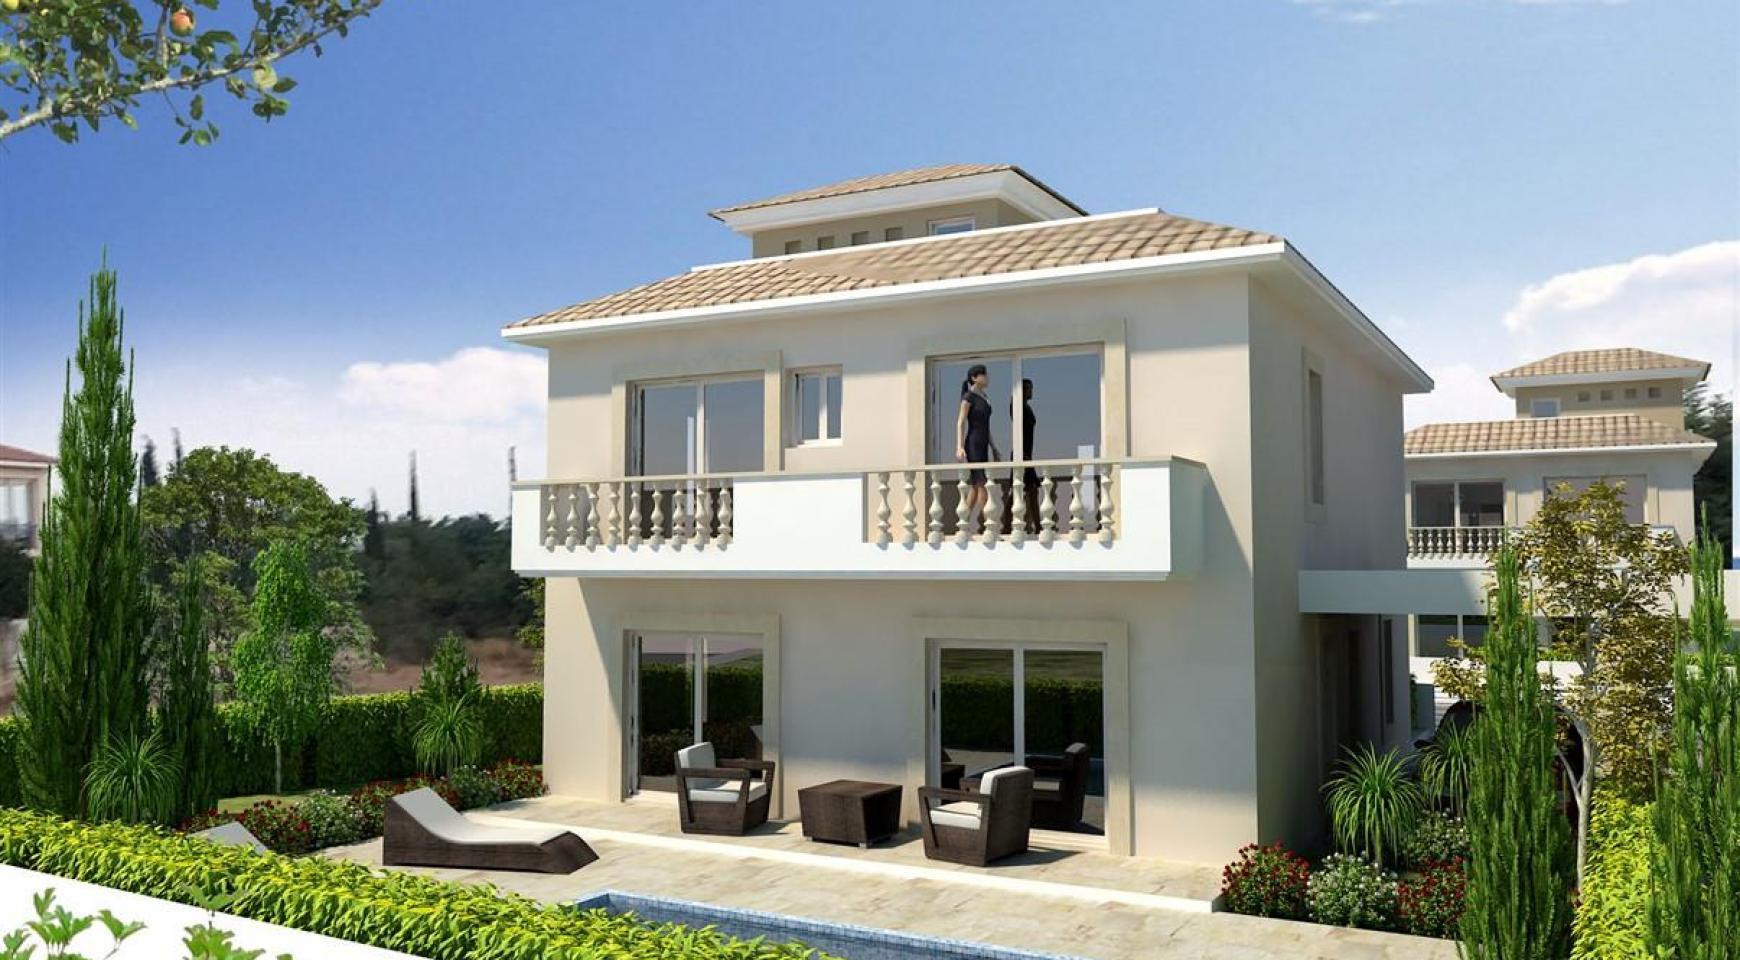 Modern 3 Bedroom Villa in a New Project - 10